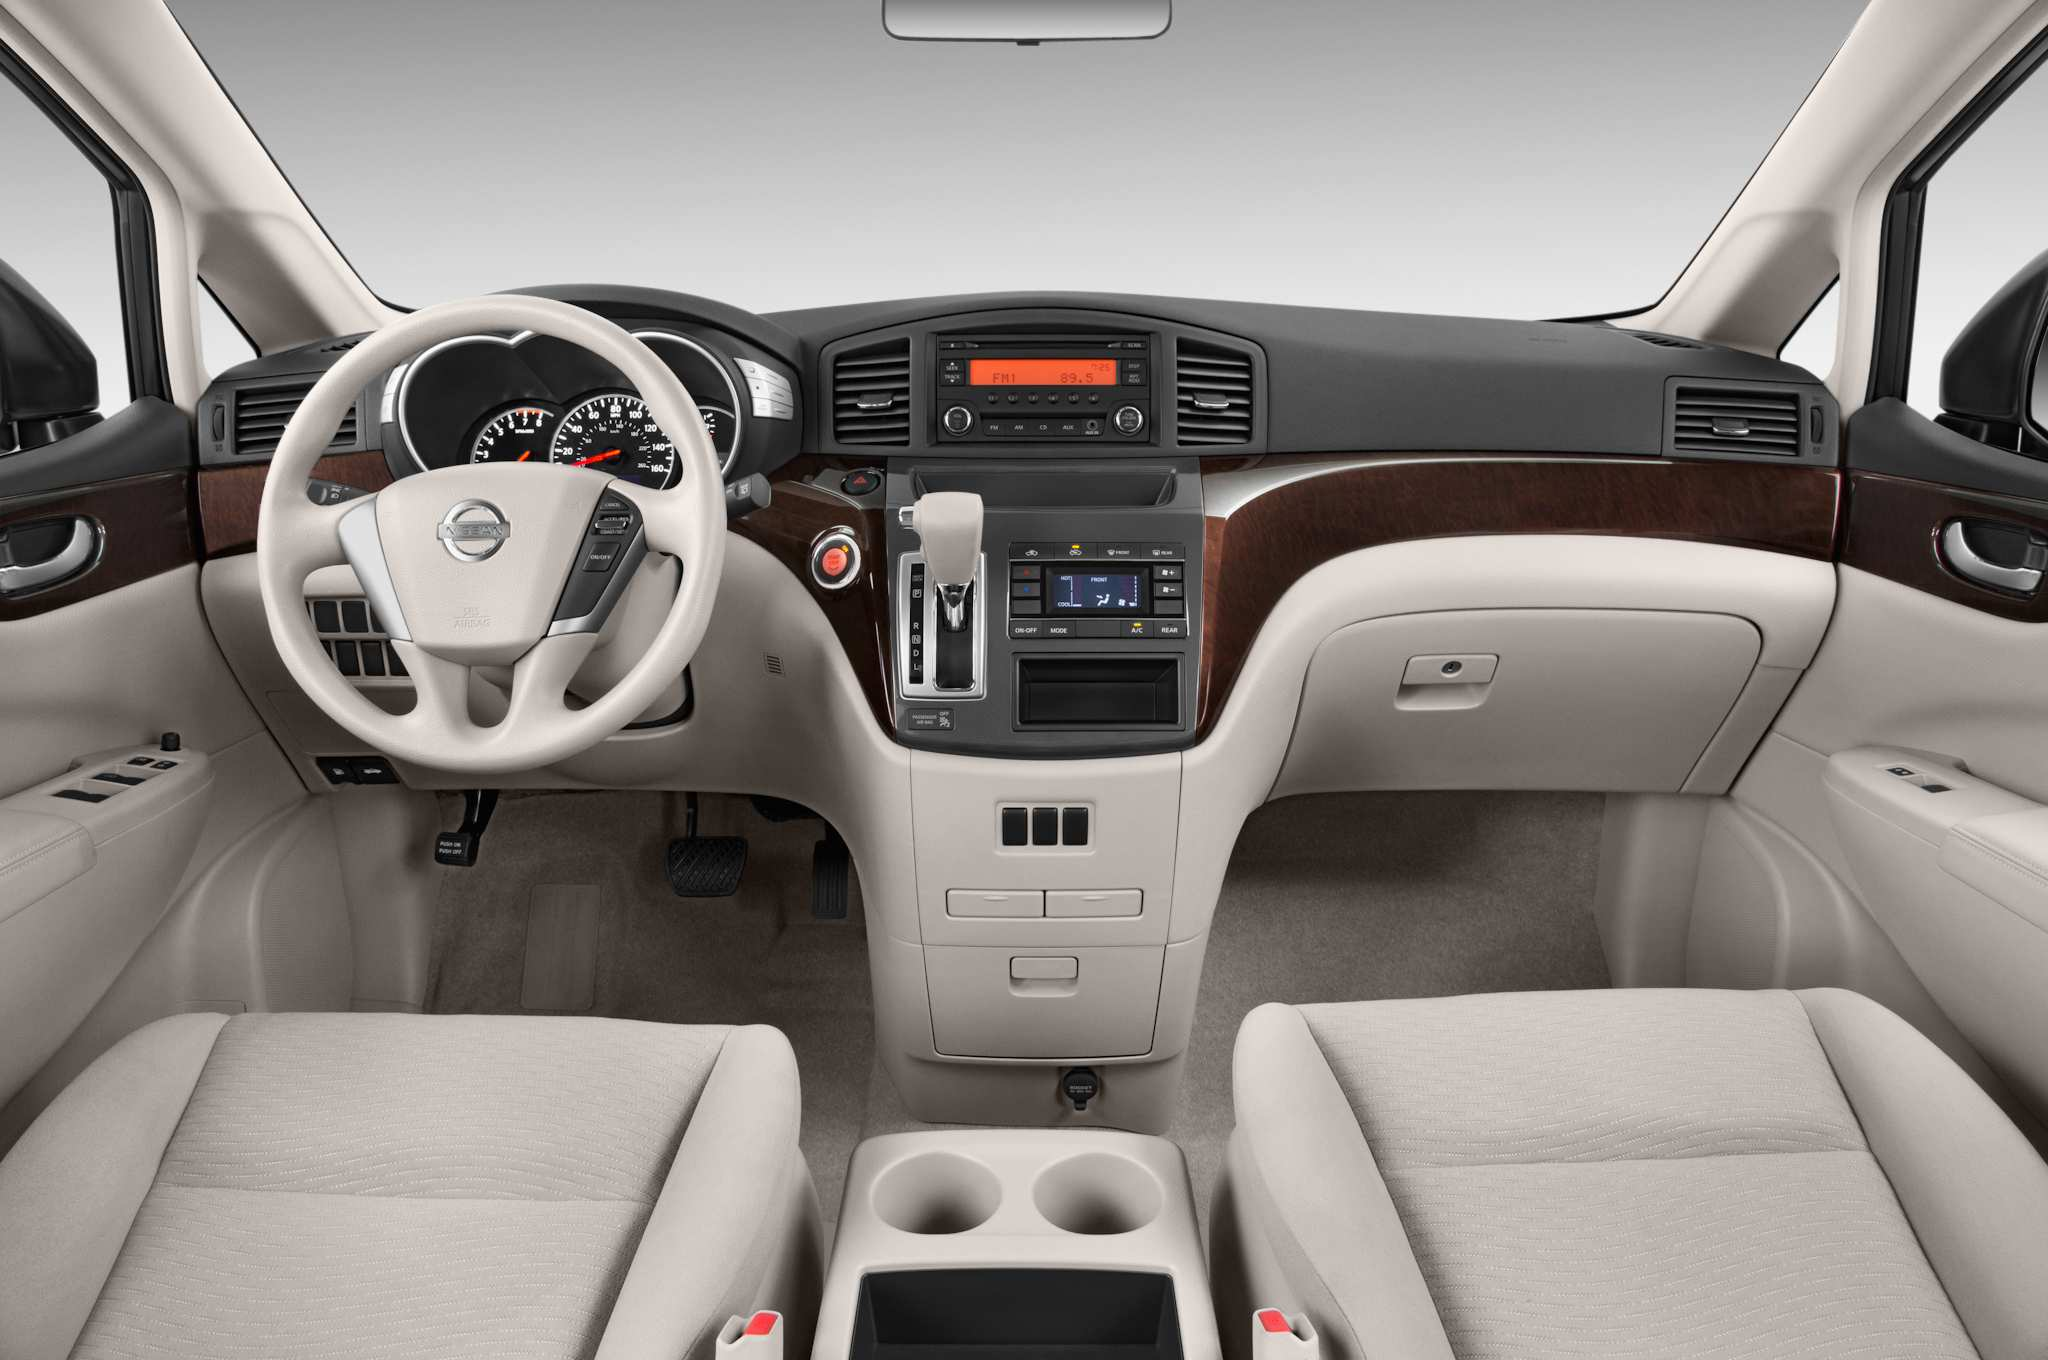 64 New 2020 Nissan Quest Interior for 2020 Nissan Quest